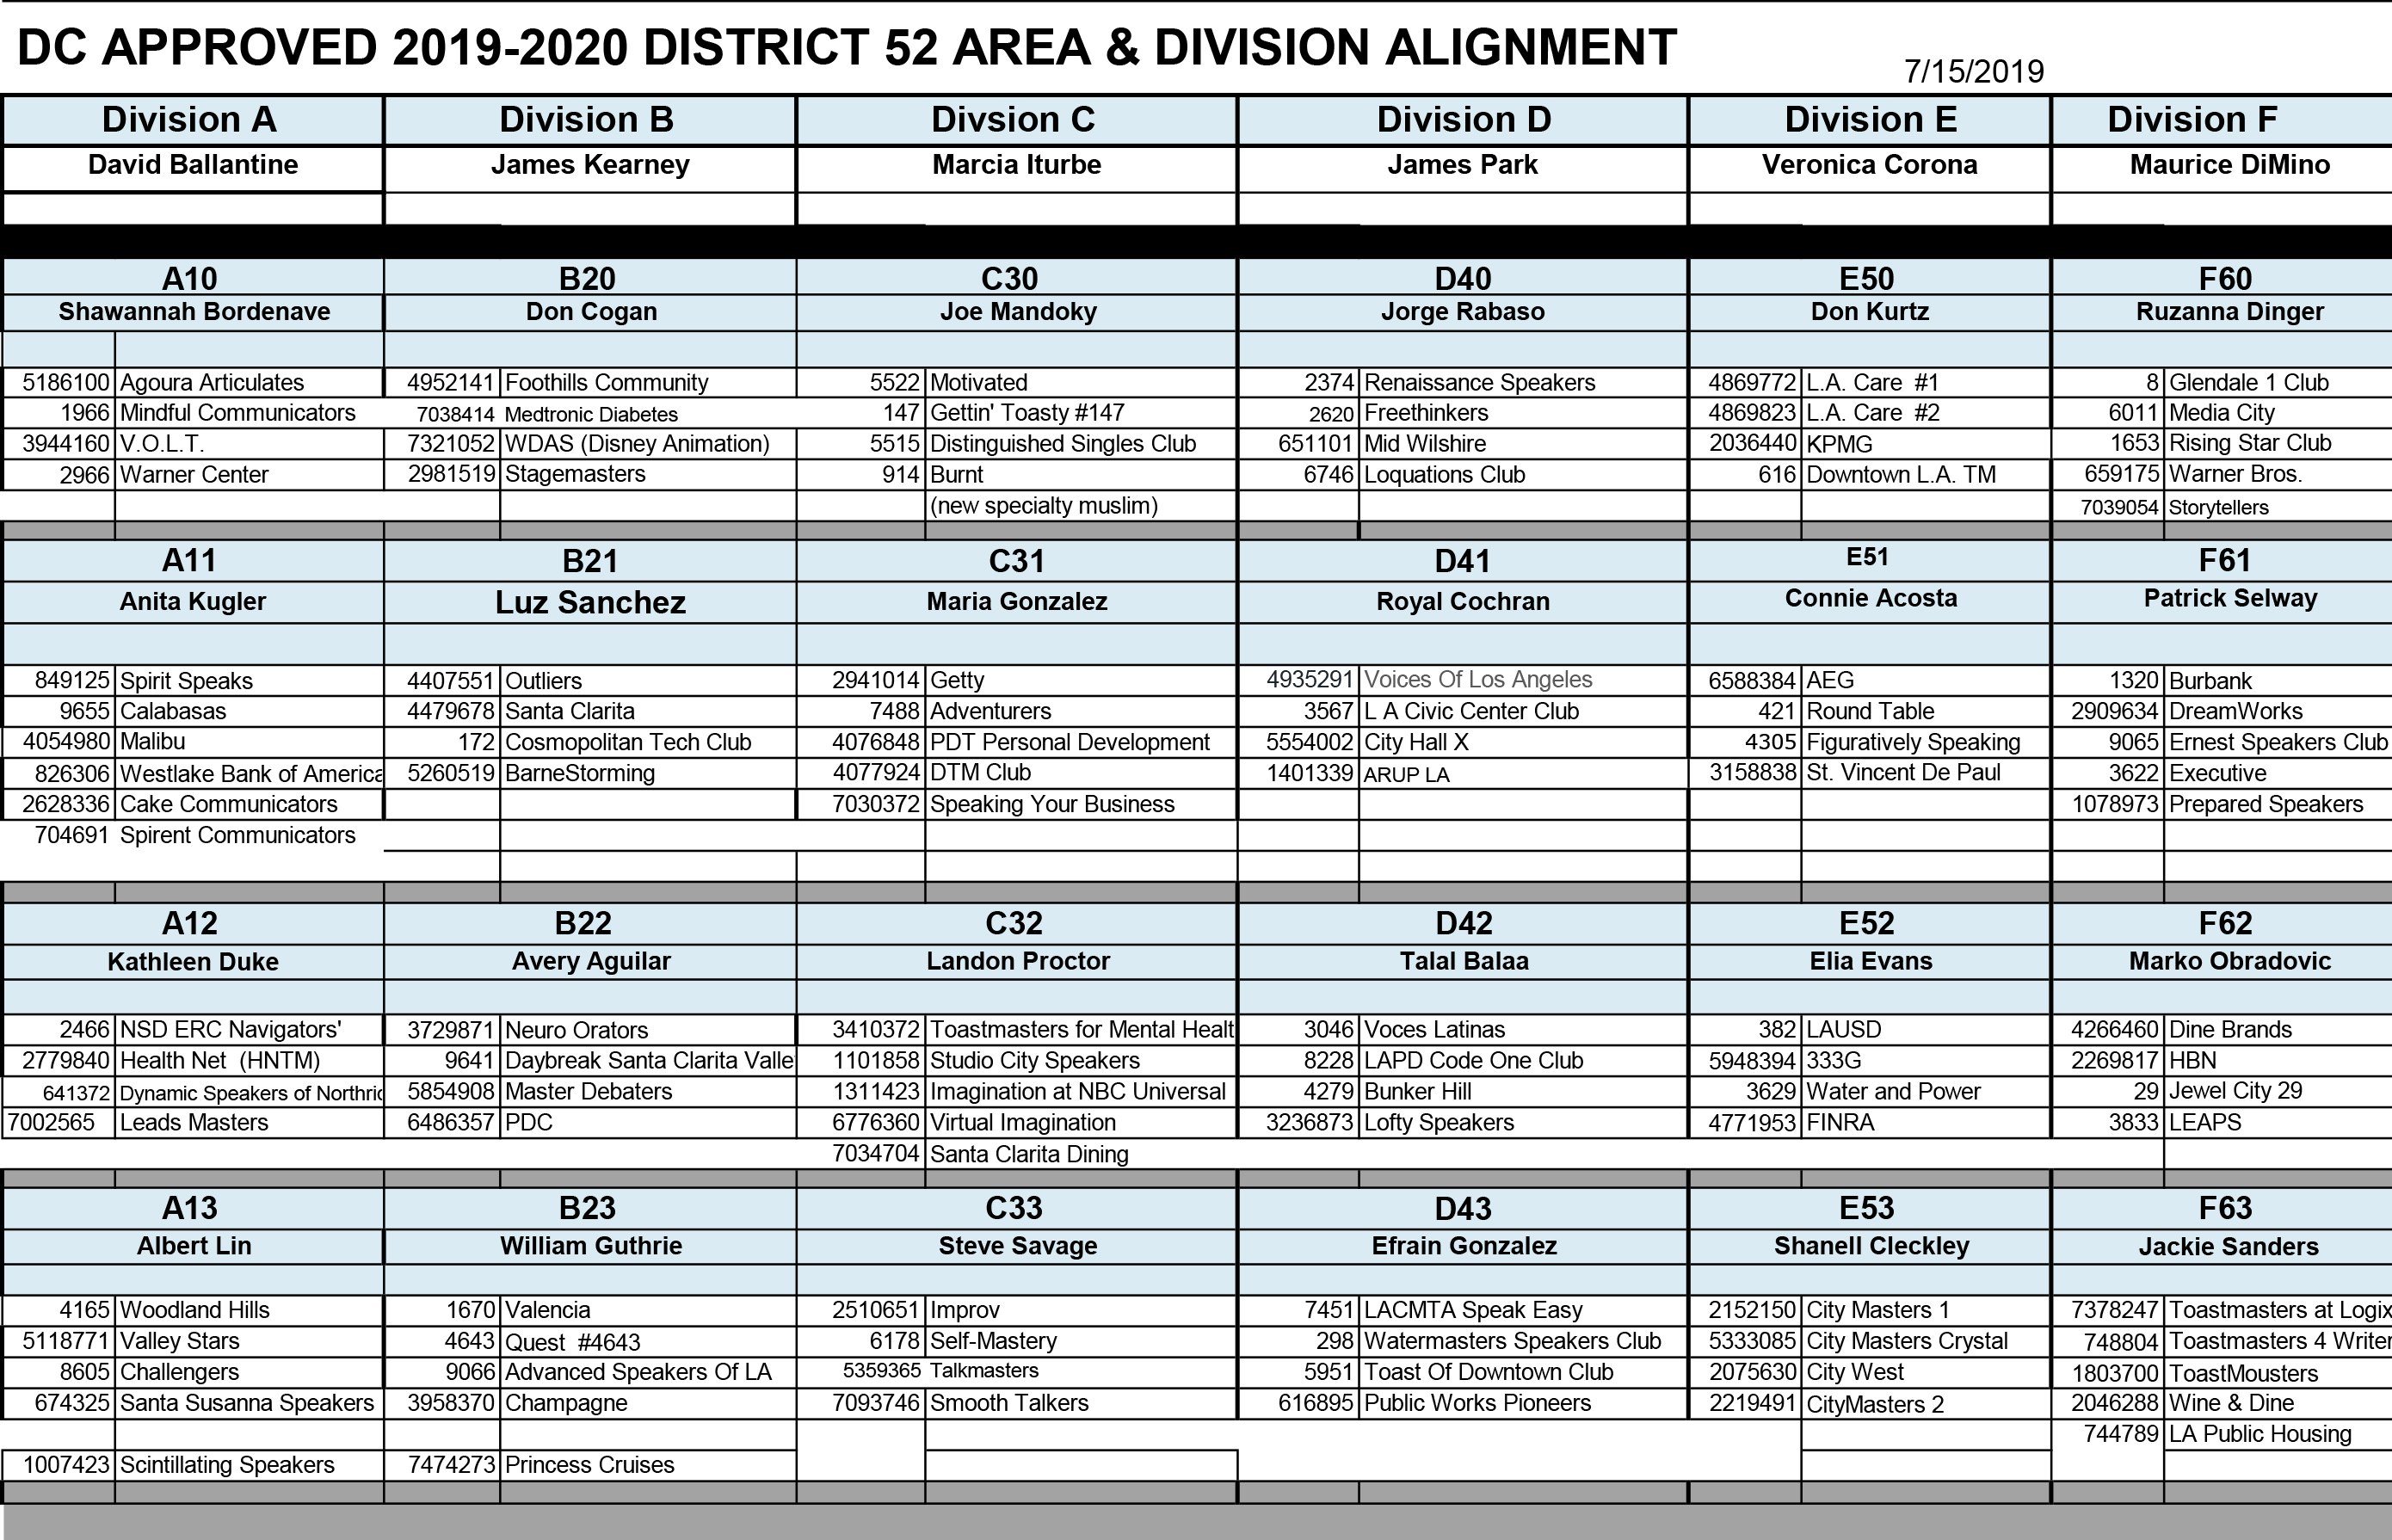 DC approved alignment